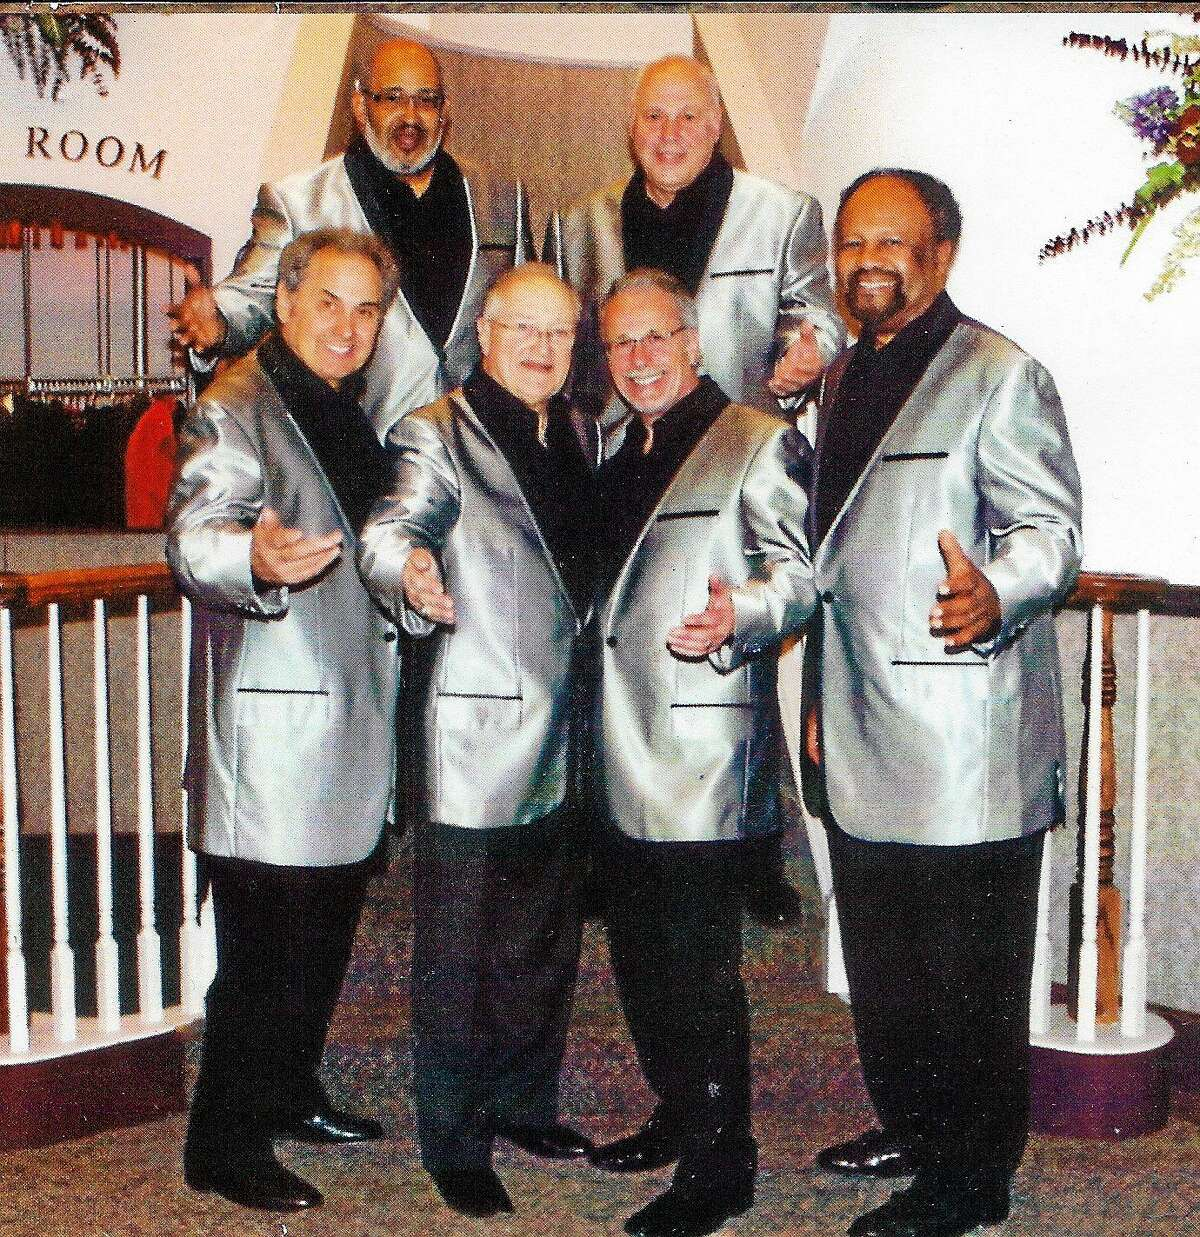 Contributed photo Bridge Street Live will participate in the 20th annual Sam Collins Day celebration taking place in Collinsville Saturday, Sept. 20, and feature one of Connecticut's premier Beatles tribute bands, Mystery Tour, along with New Britain's a cappella doo wop group, The Crown Imperials.